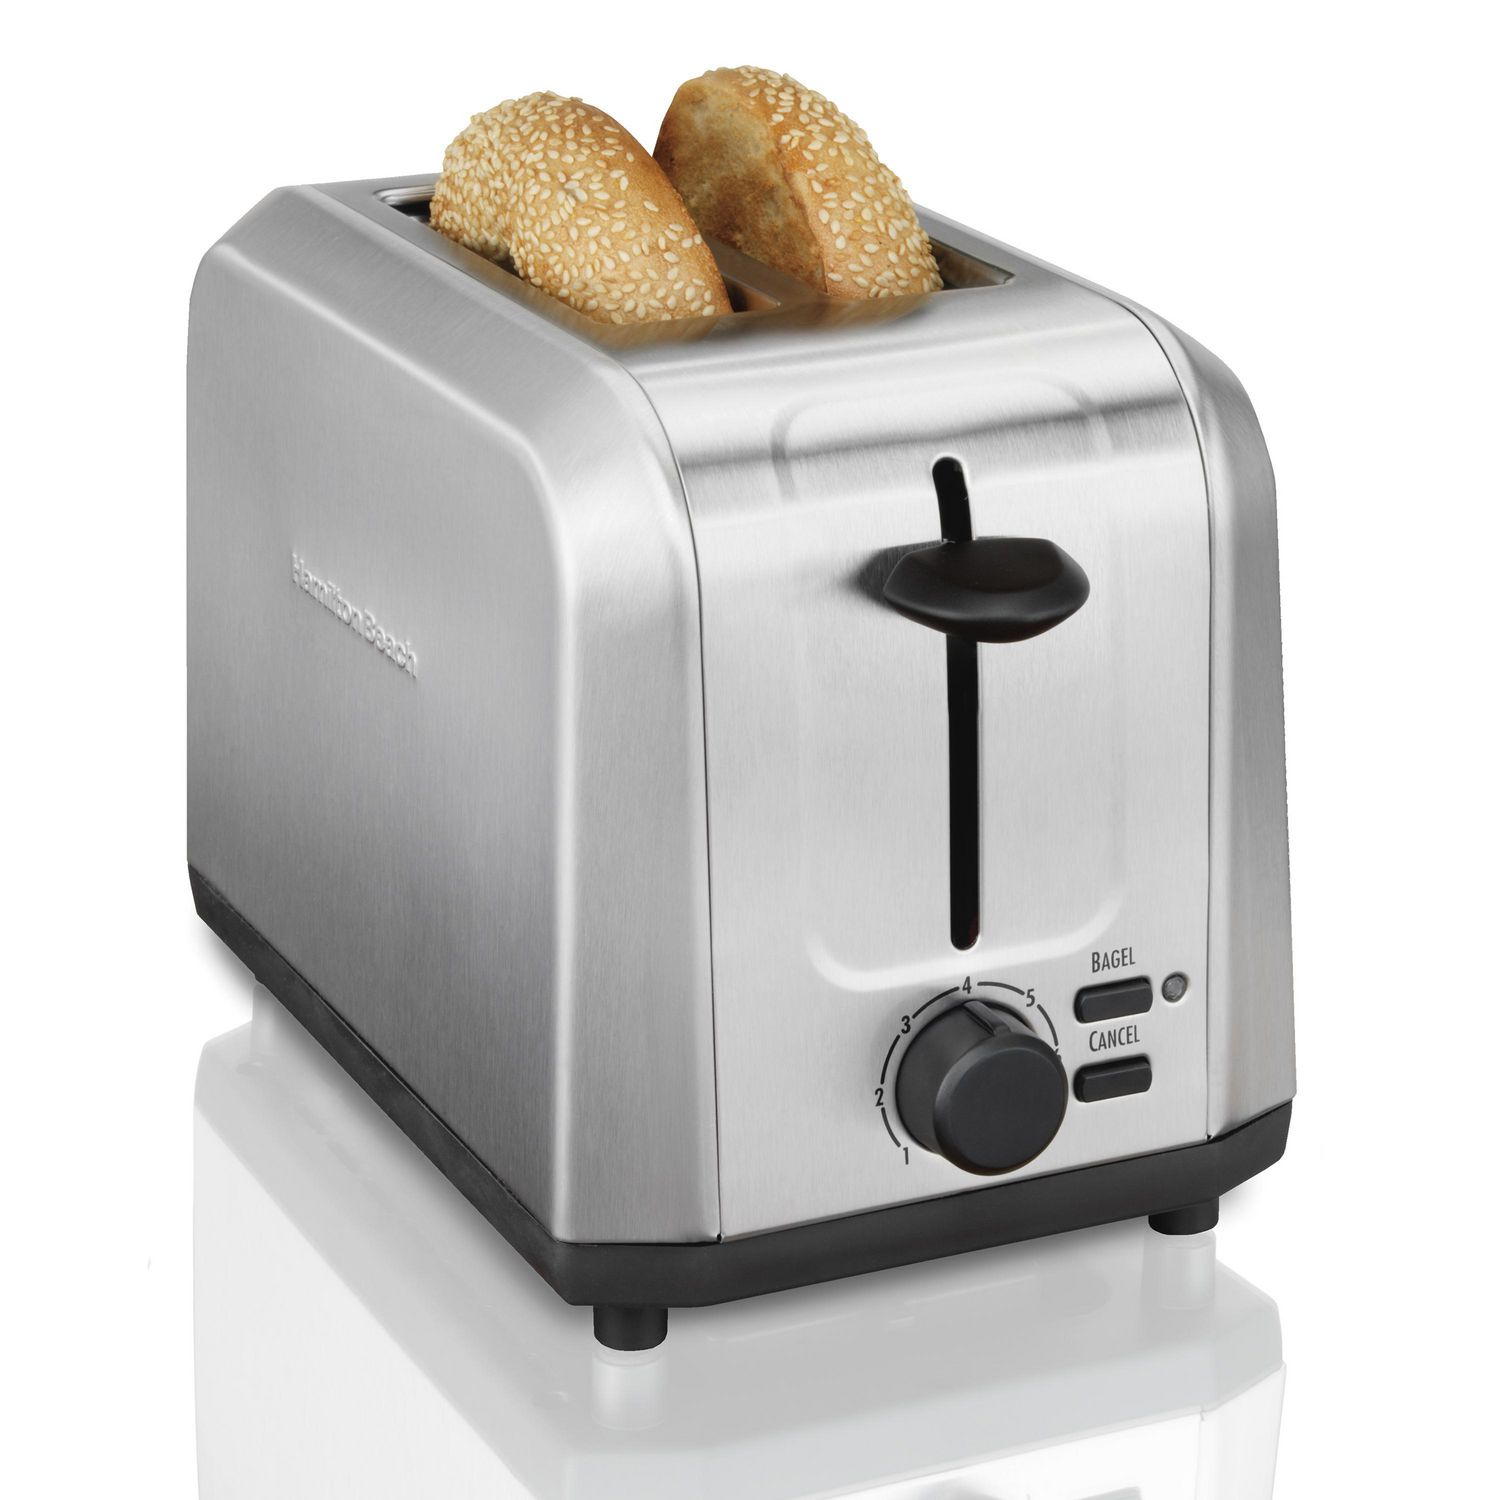 Hamilton Beach 22911C Brushed Stainless Steel Toaster